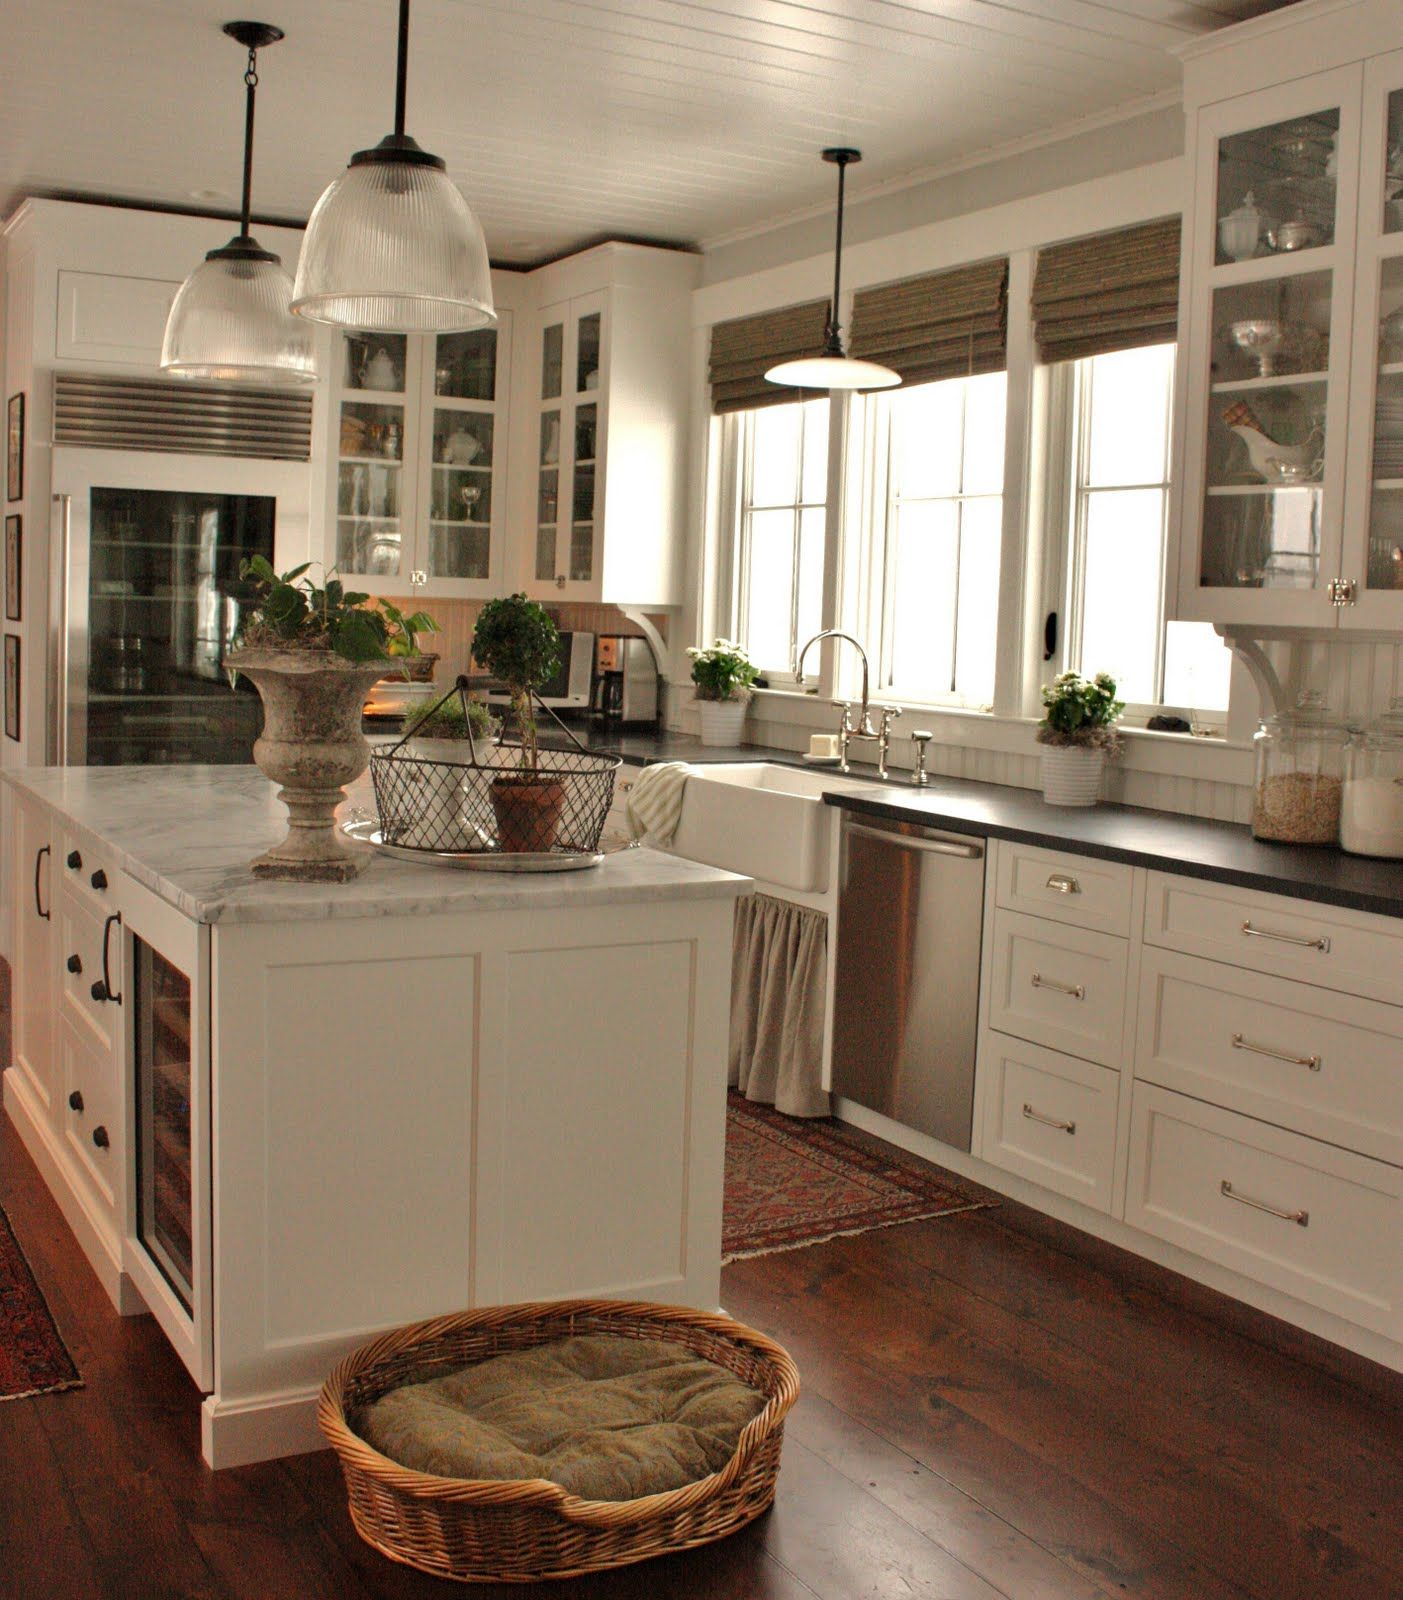 Lovely Farmhouse Kitchen Floor Ideas Part - 9: White Kitchen With Dark Countertops And Glass Cabinet Doors. Marble  Countertop On Island. Beadboard Ceiling And Wood Floors.